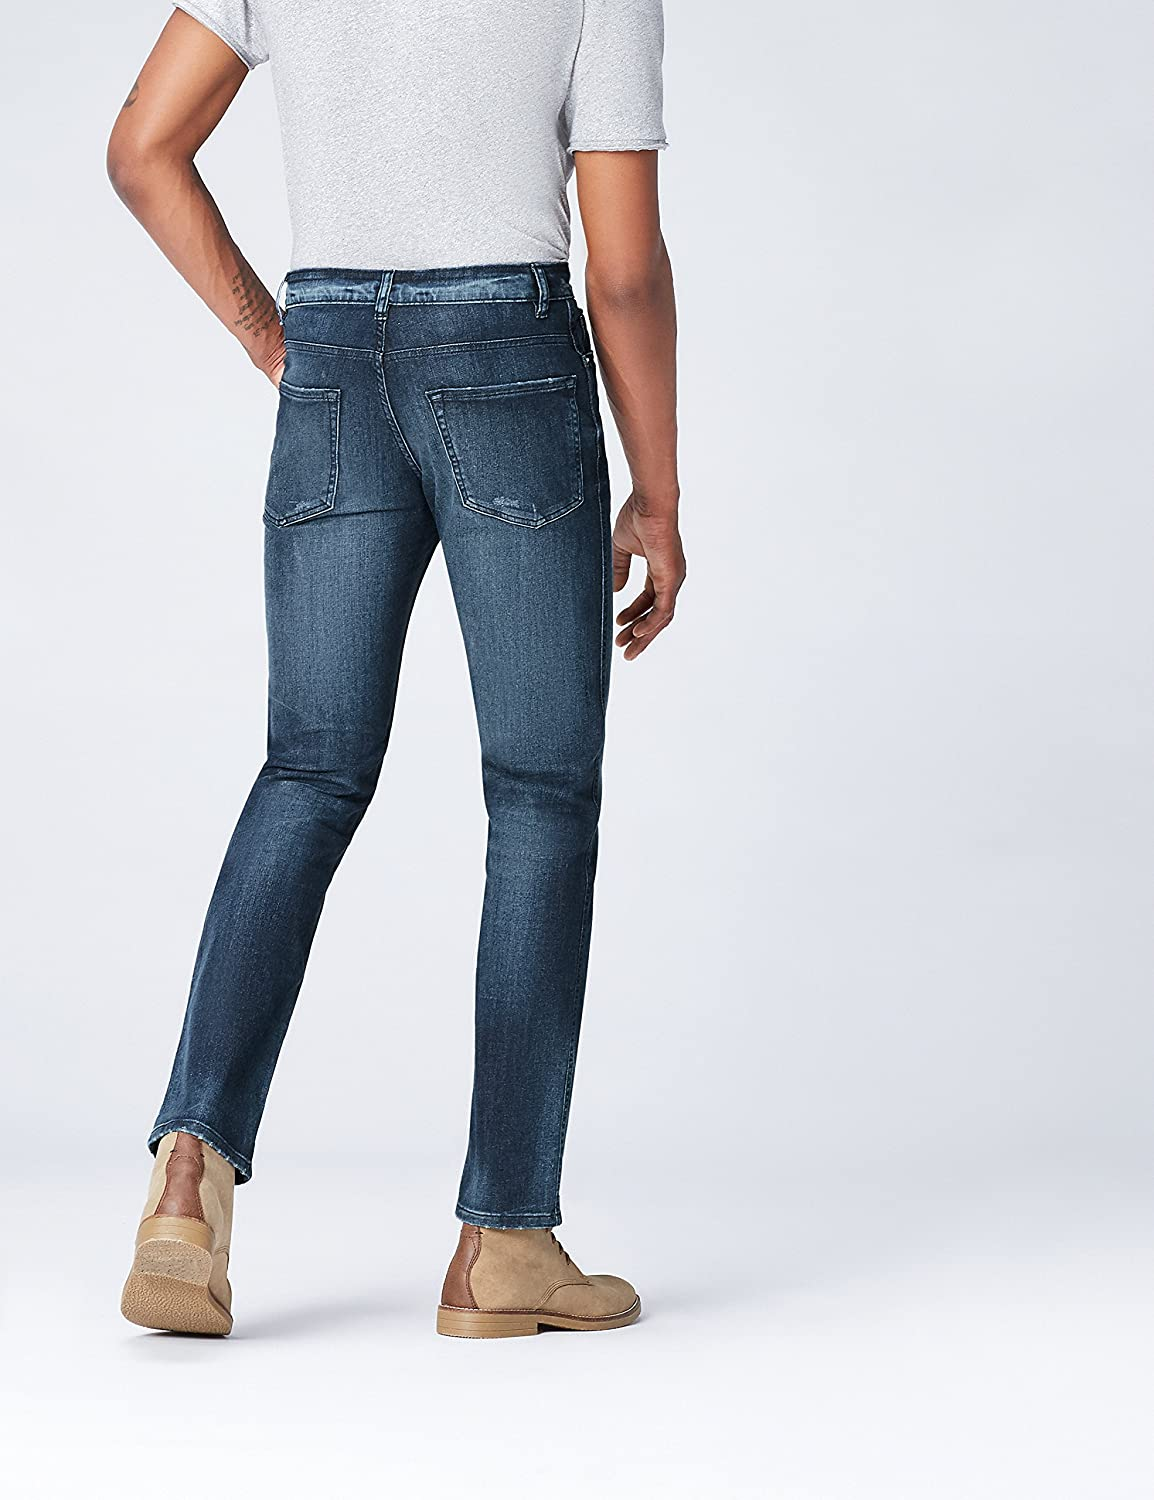 Jeans Slim Fit Uomo find